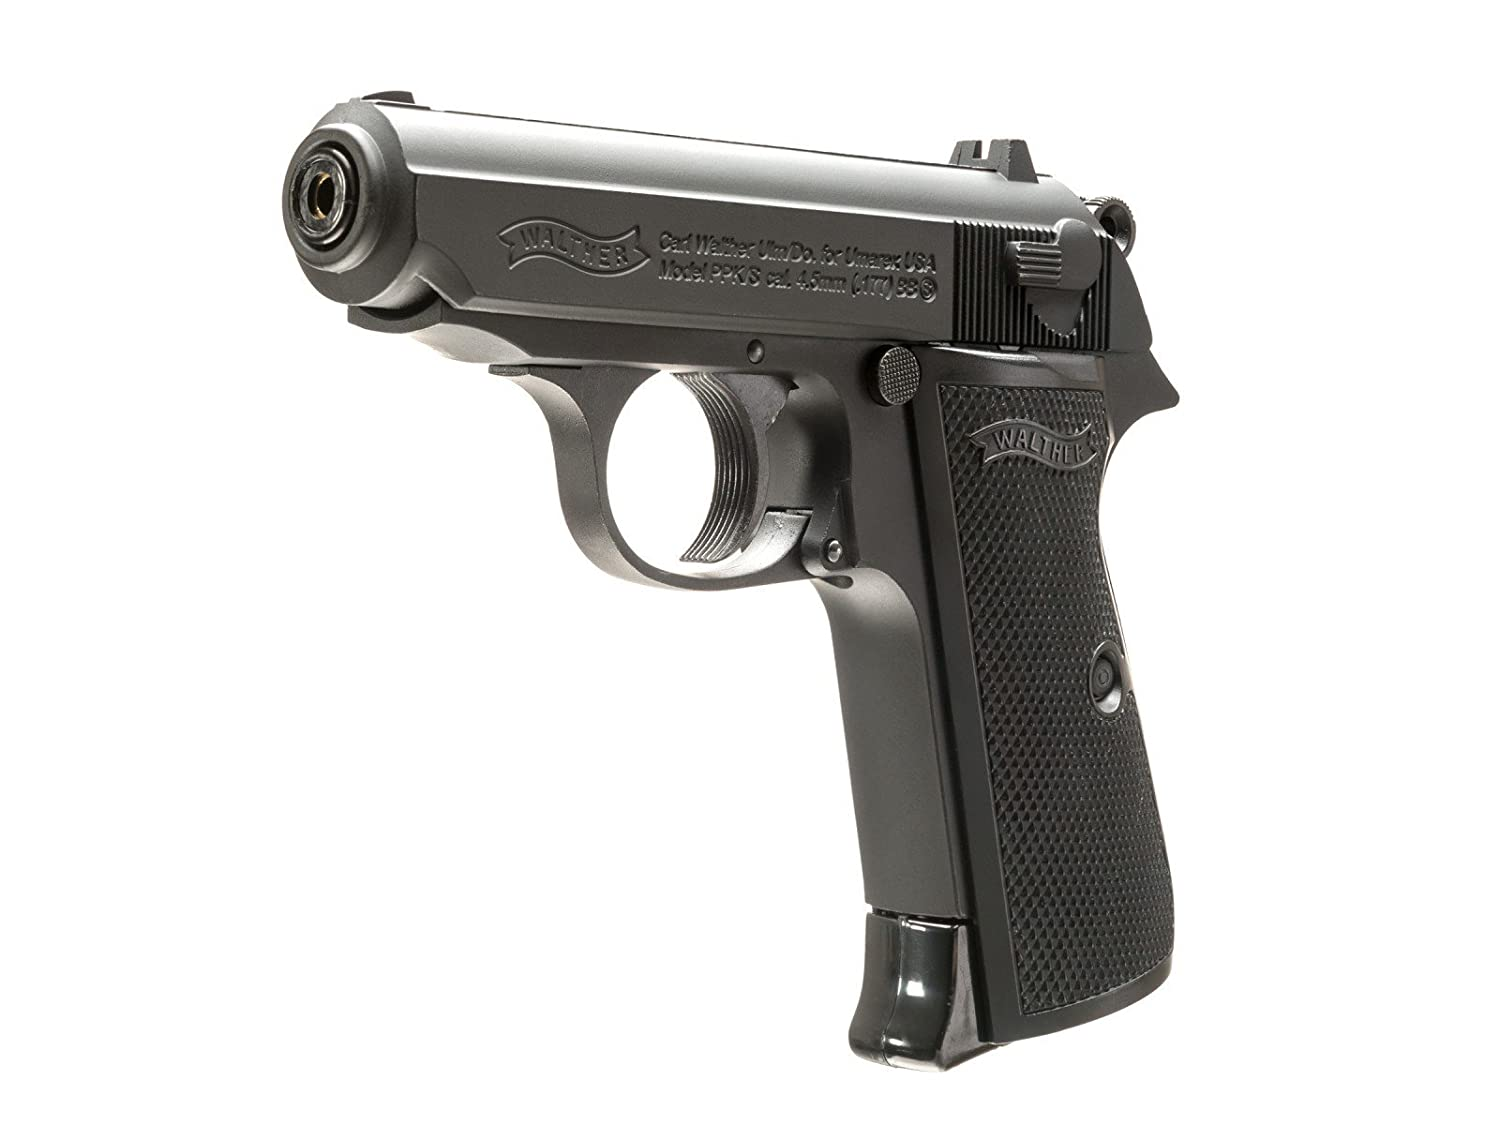 umarex walther p99 user manual product user guide instruction